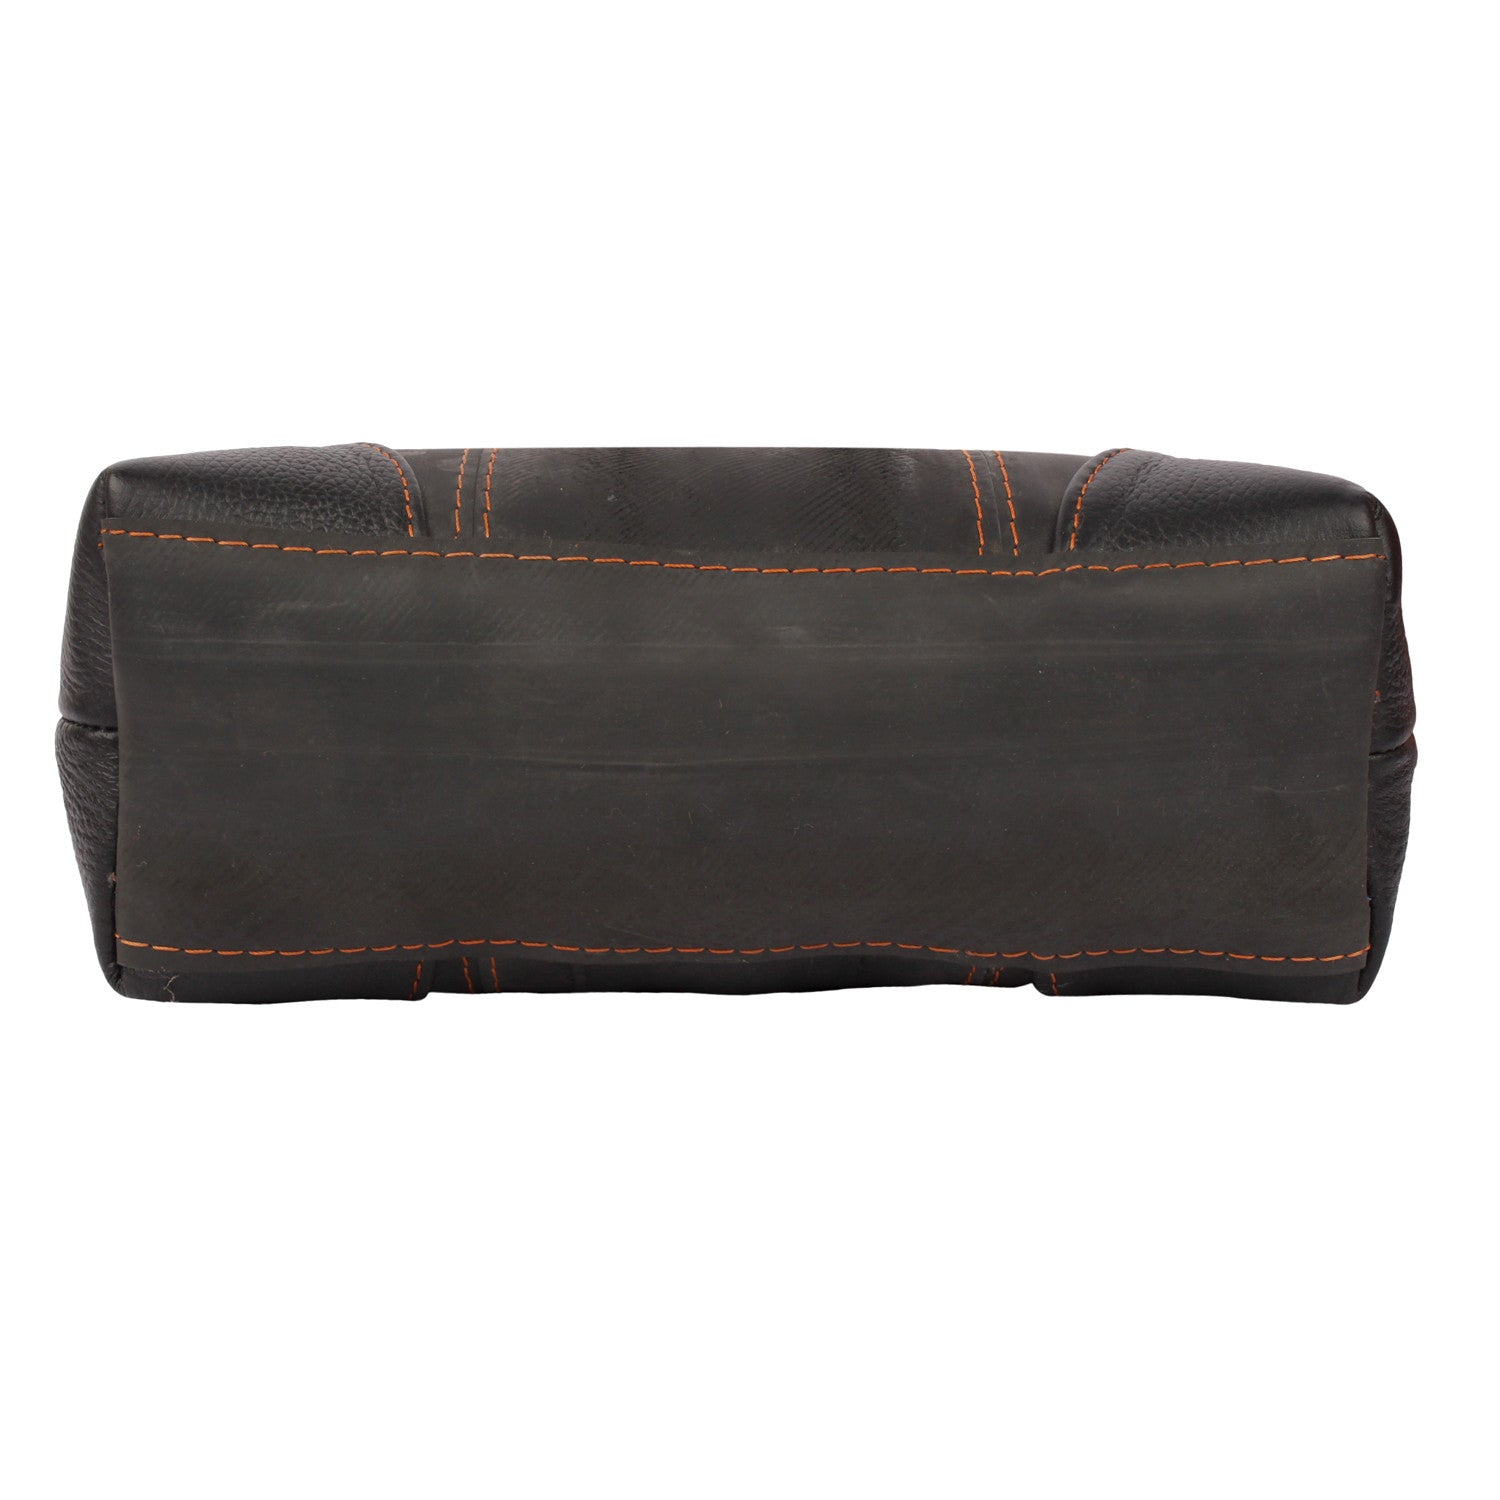 The Pearl Tube Cosmetic Pouch